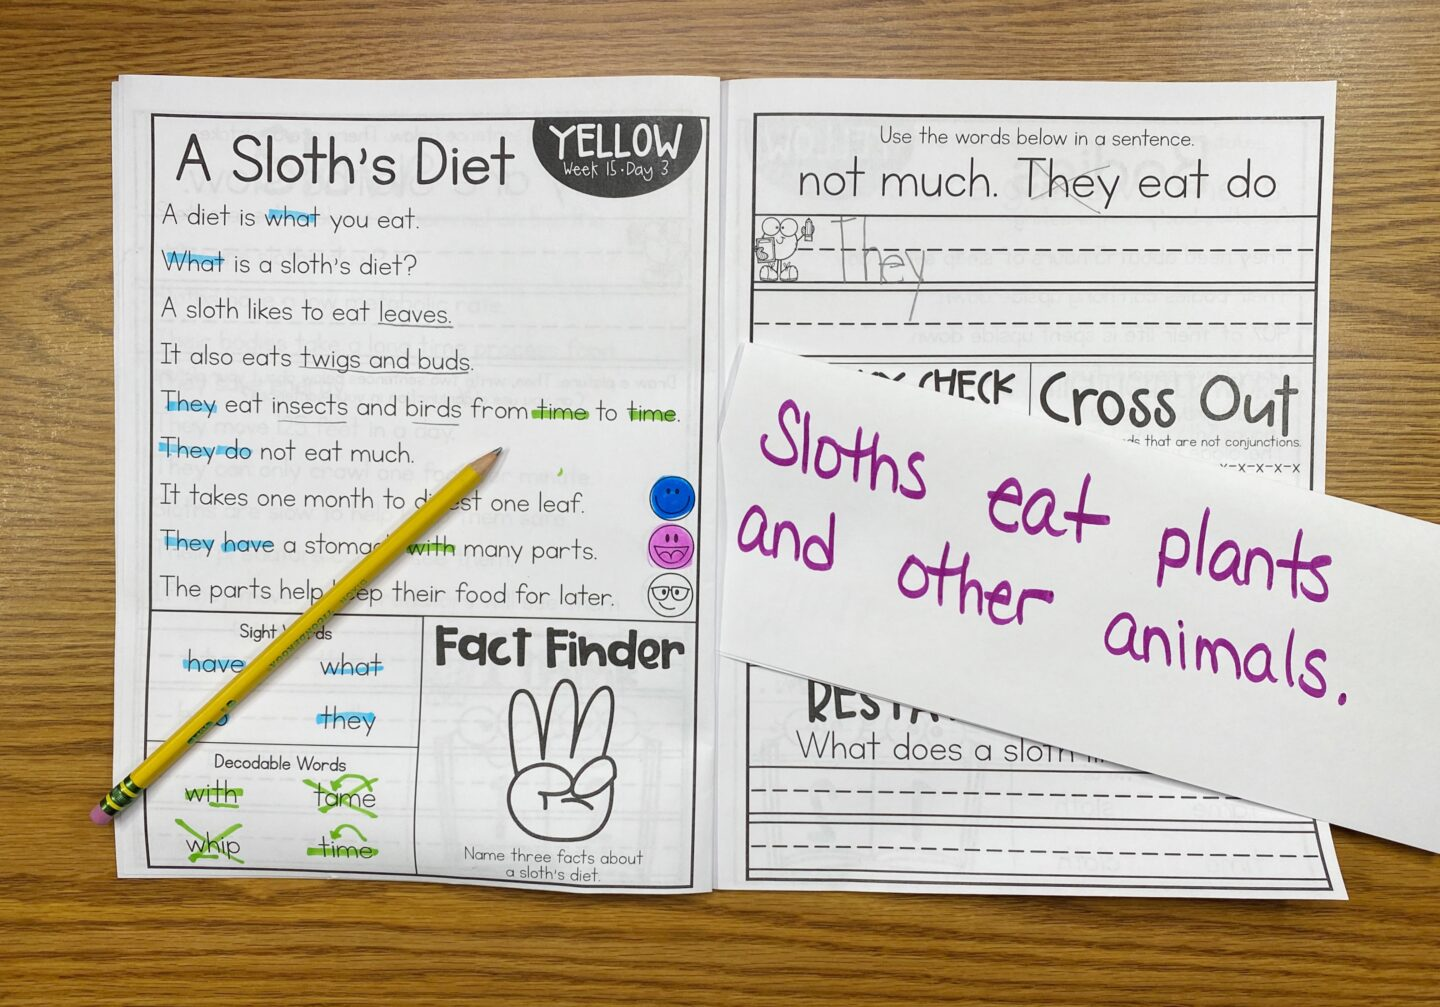 "Image of Primary Gal's Reading Series Book Yellow on a Desk with a Pencil and a Piece of Paper that has the Support Statement ""Sloths eat plants and other animals"" for one of the Quick Activities to Do When Reading Together in a Small Group"